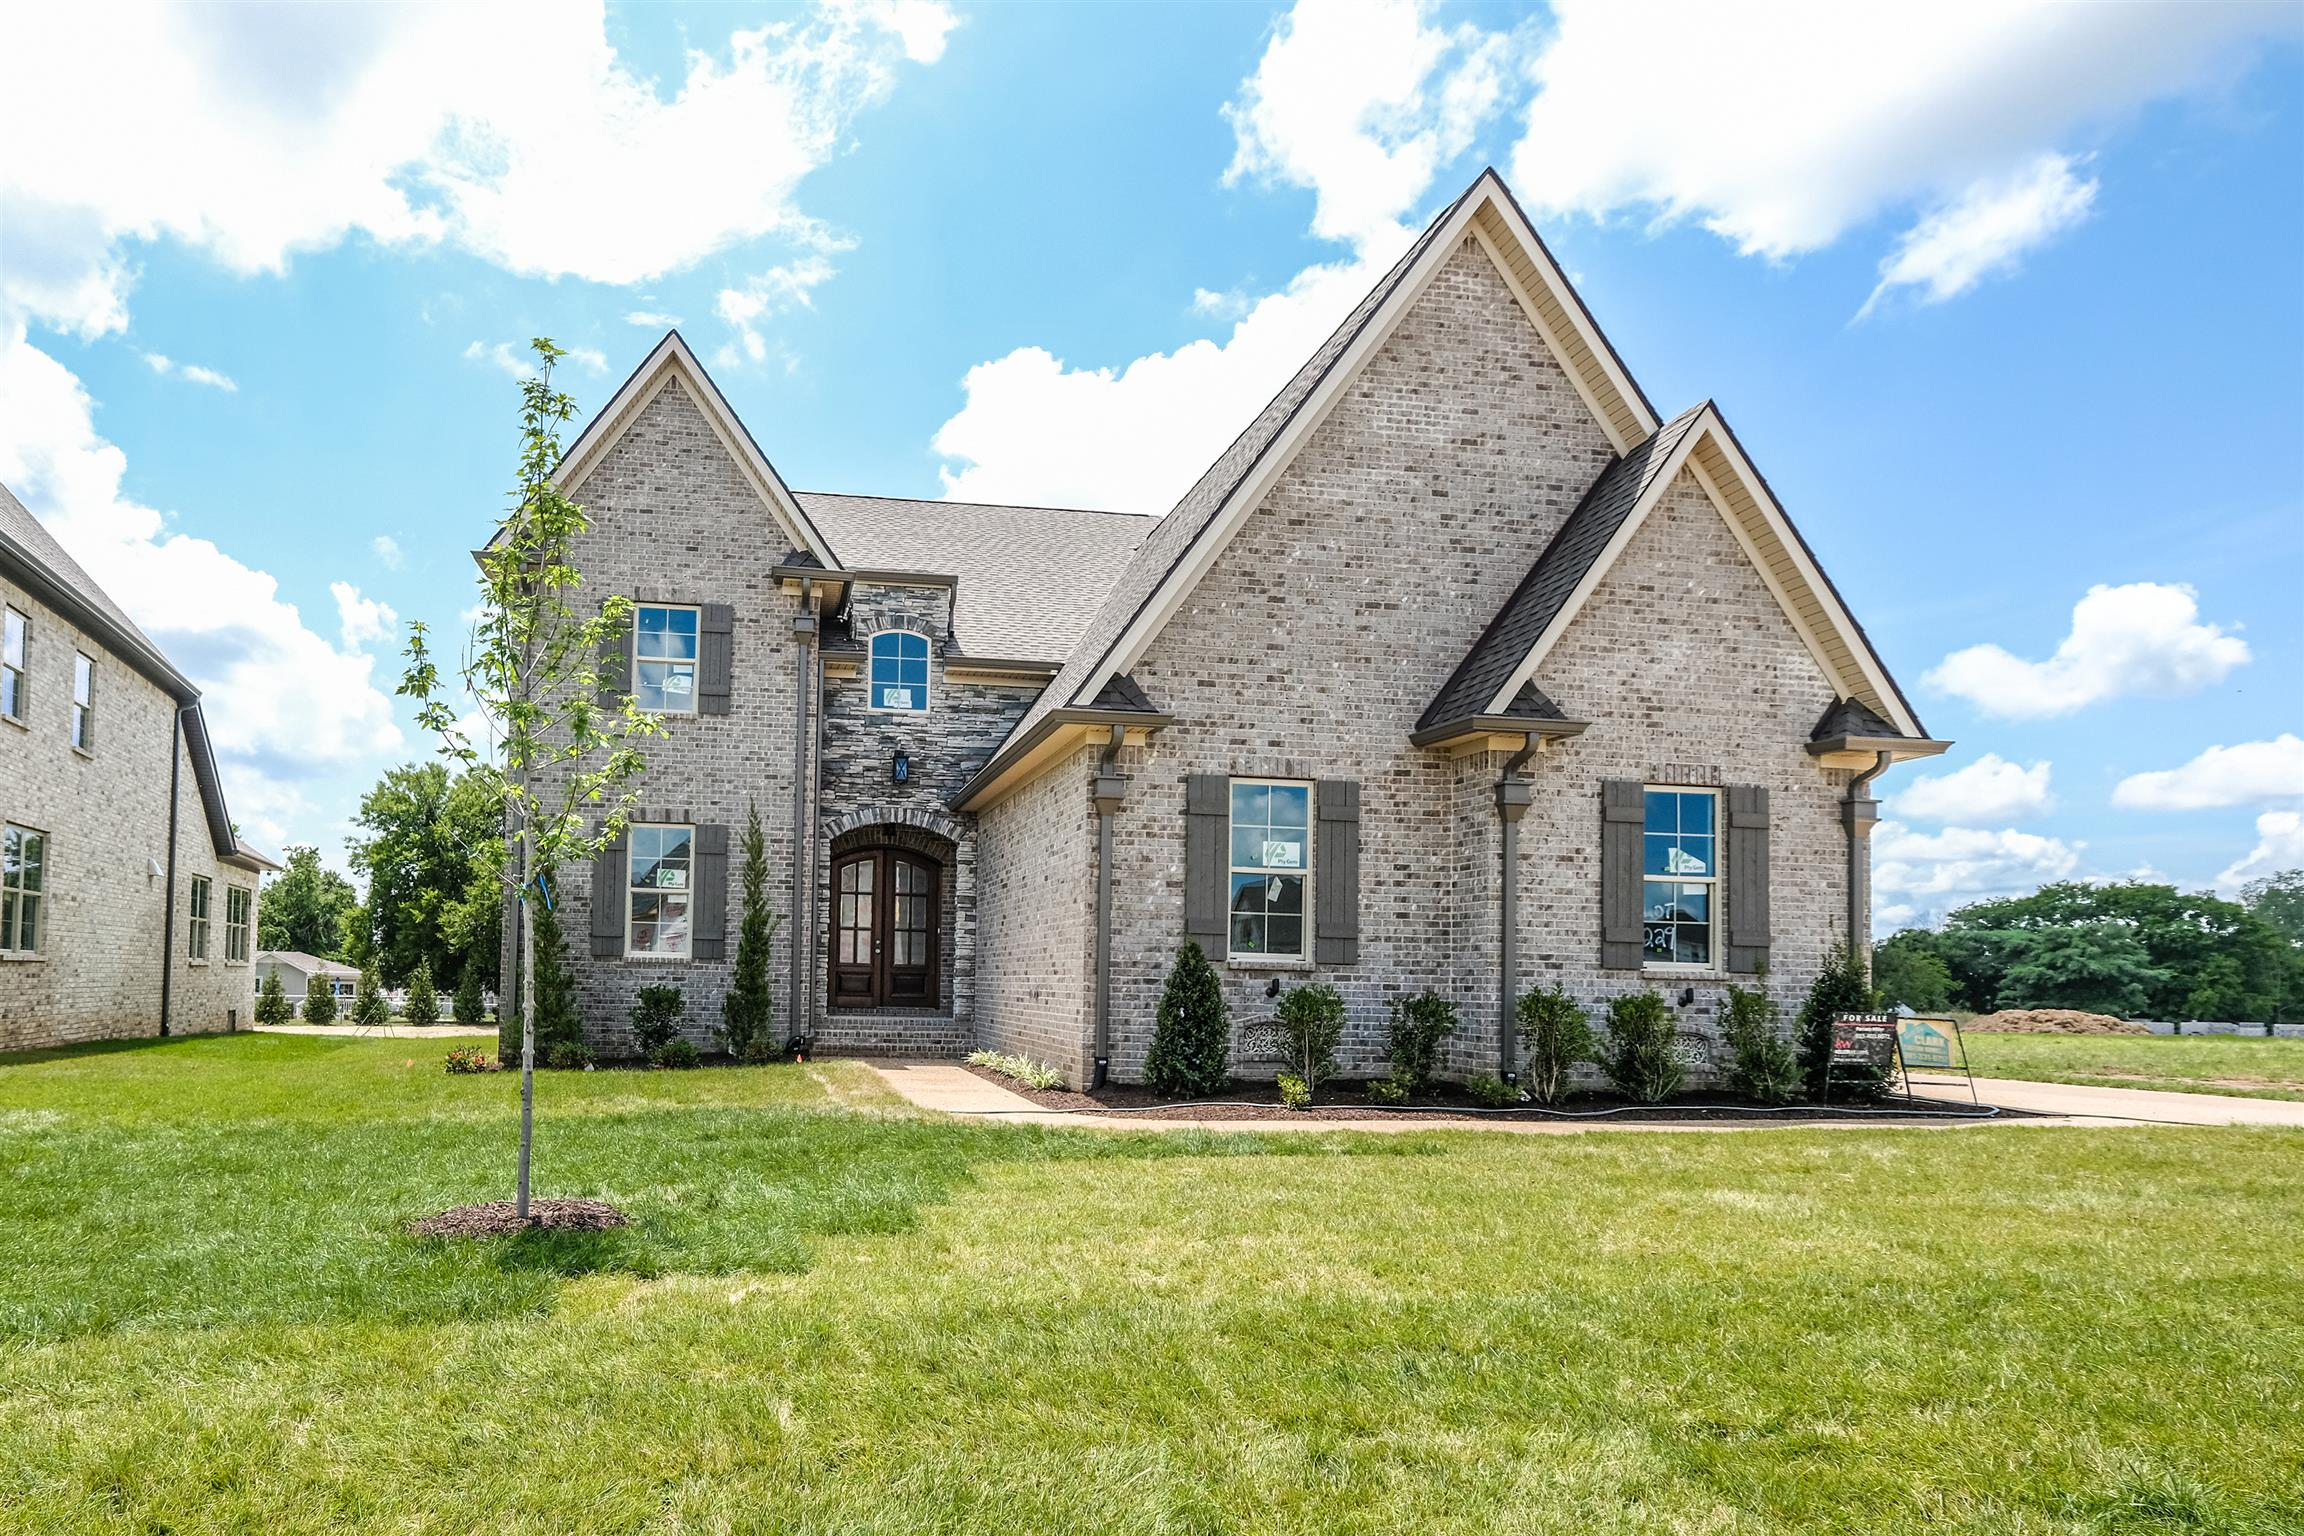 2039 Autumn Ridge Way (Lot 229) 37174 - One of Spring Hill Homes for Sale